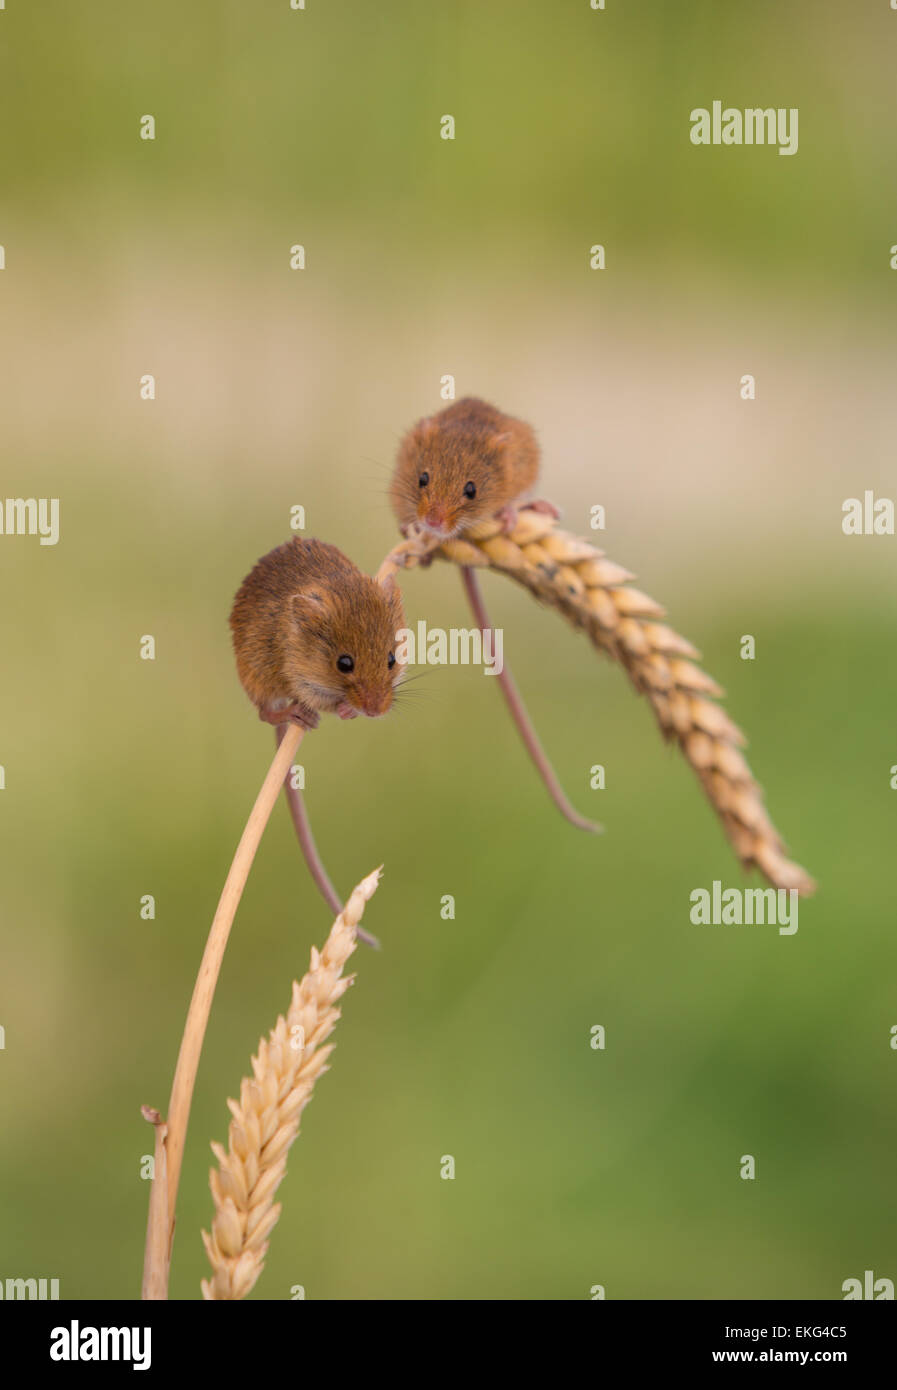 Harvest mice on wheat Stock Photo